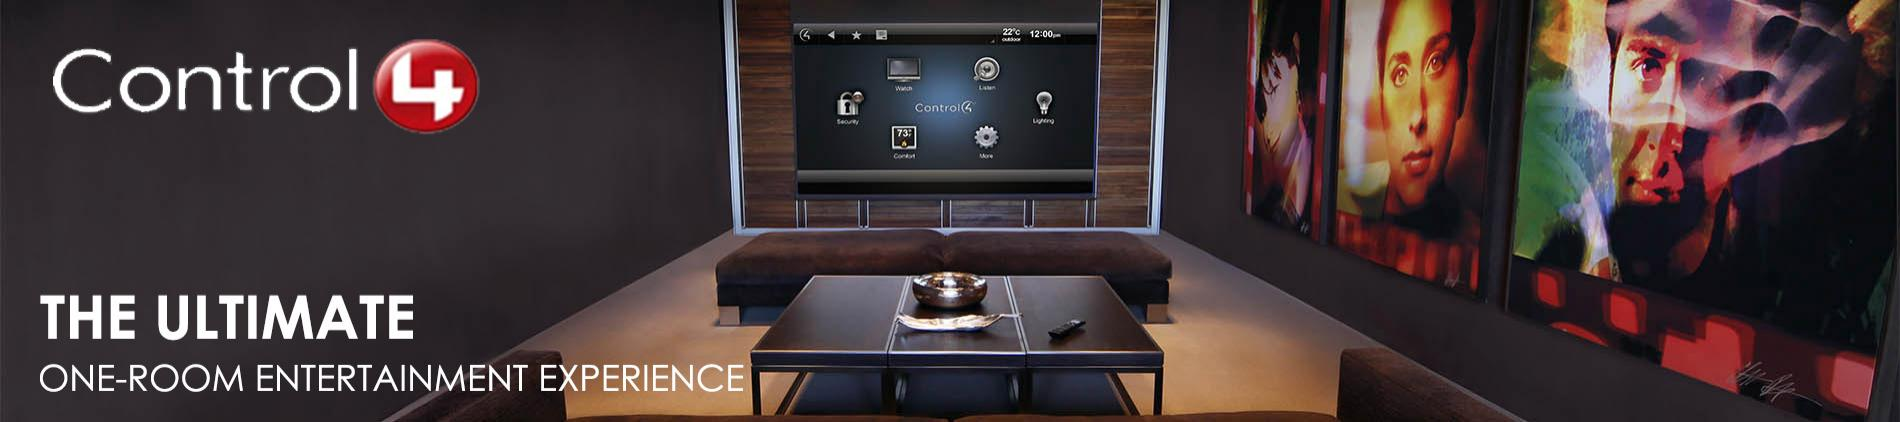 Control4, Theatre, Custom, Smart Home